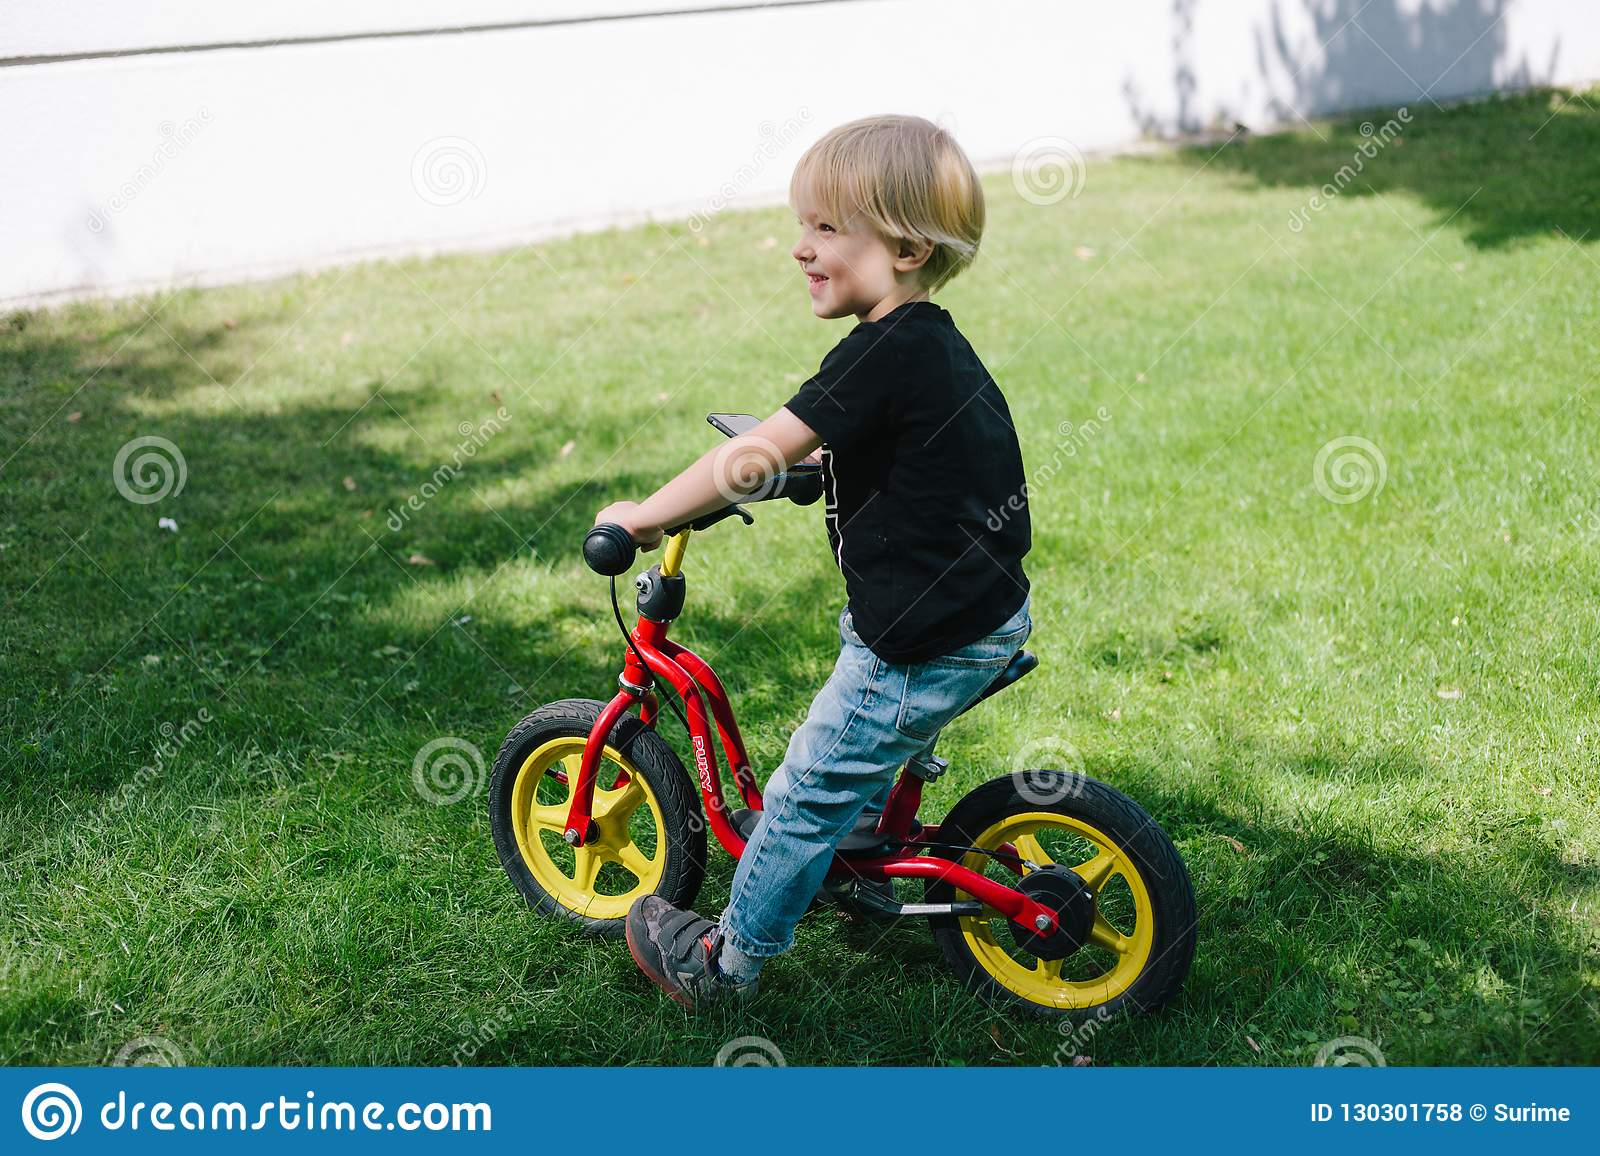 Caucasian Kid On Bicycle Stock Photo Image Of Baby 130301758